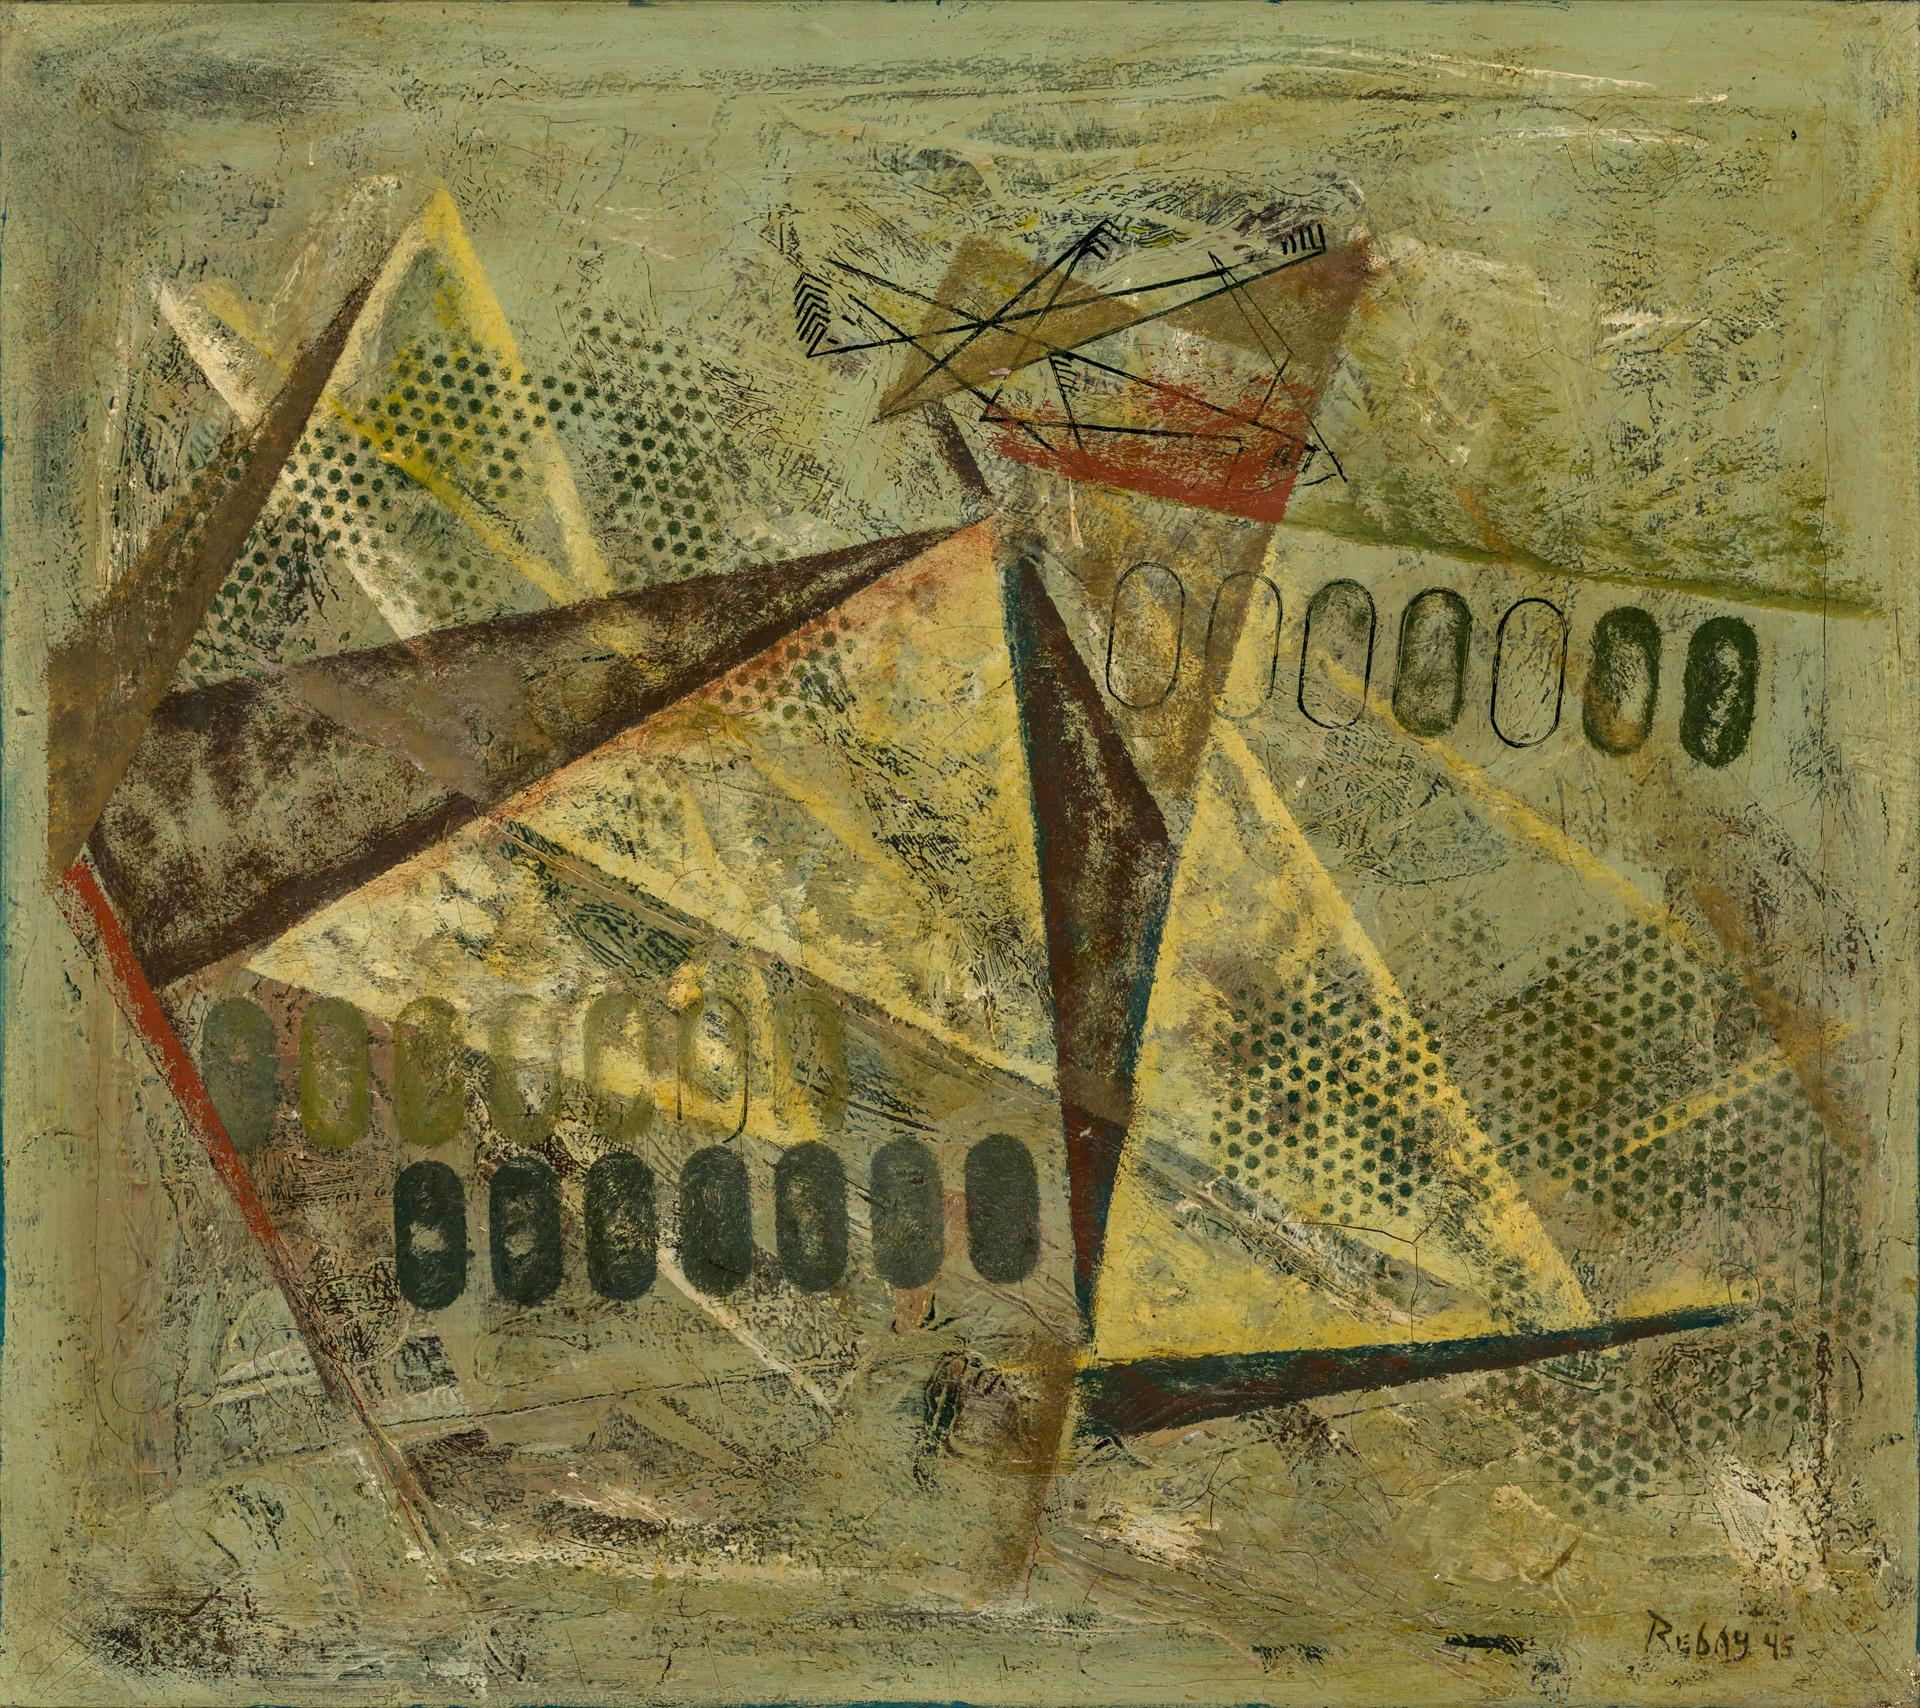 """HILLA REBAY, American (1890 - 1967), Untitled, oil on canvas, signed and dated lower right """"Rebay 45"""", 24 x 27 inches"""